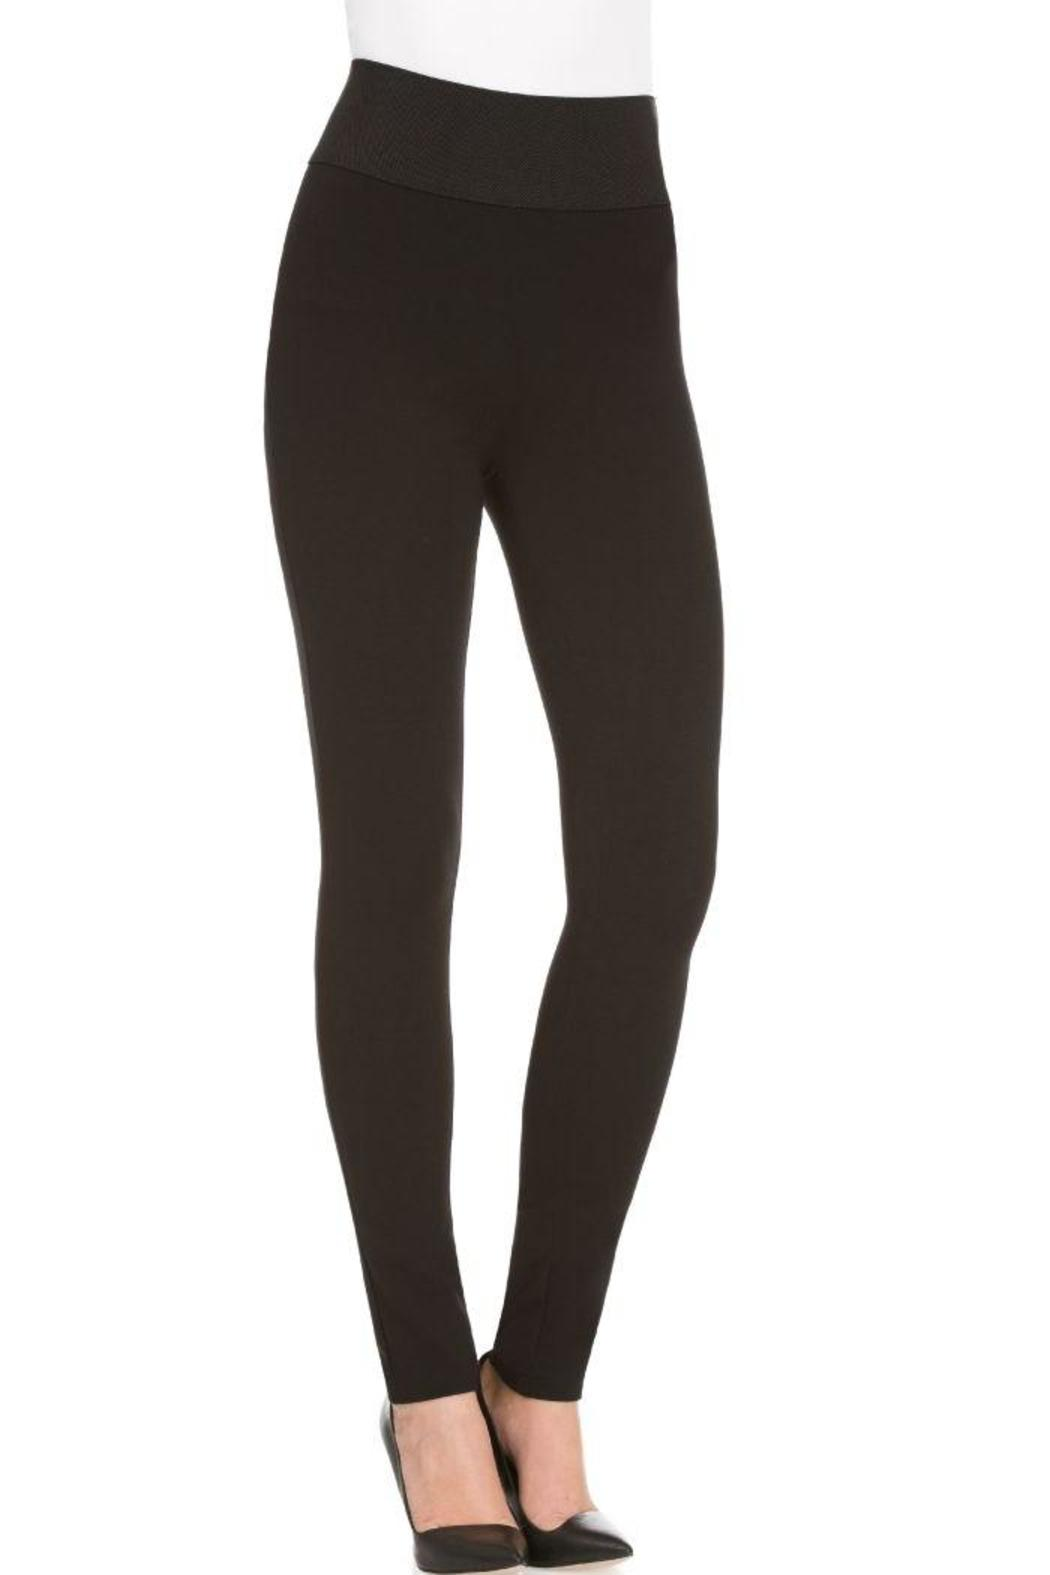 Tribal Ultimate Black Leggings from Cambria by New Moon ...